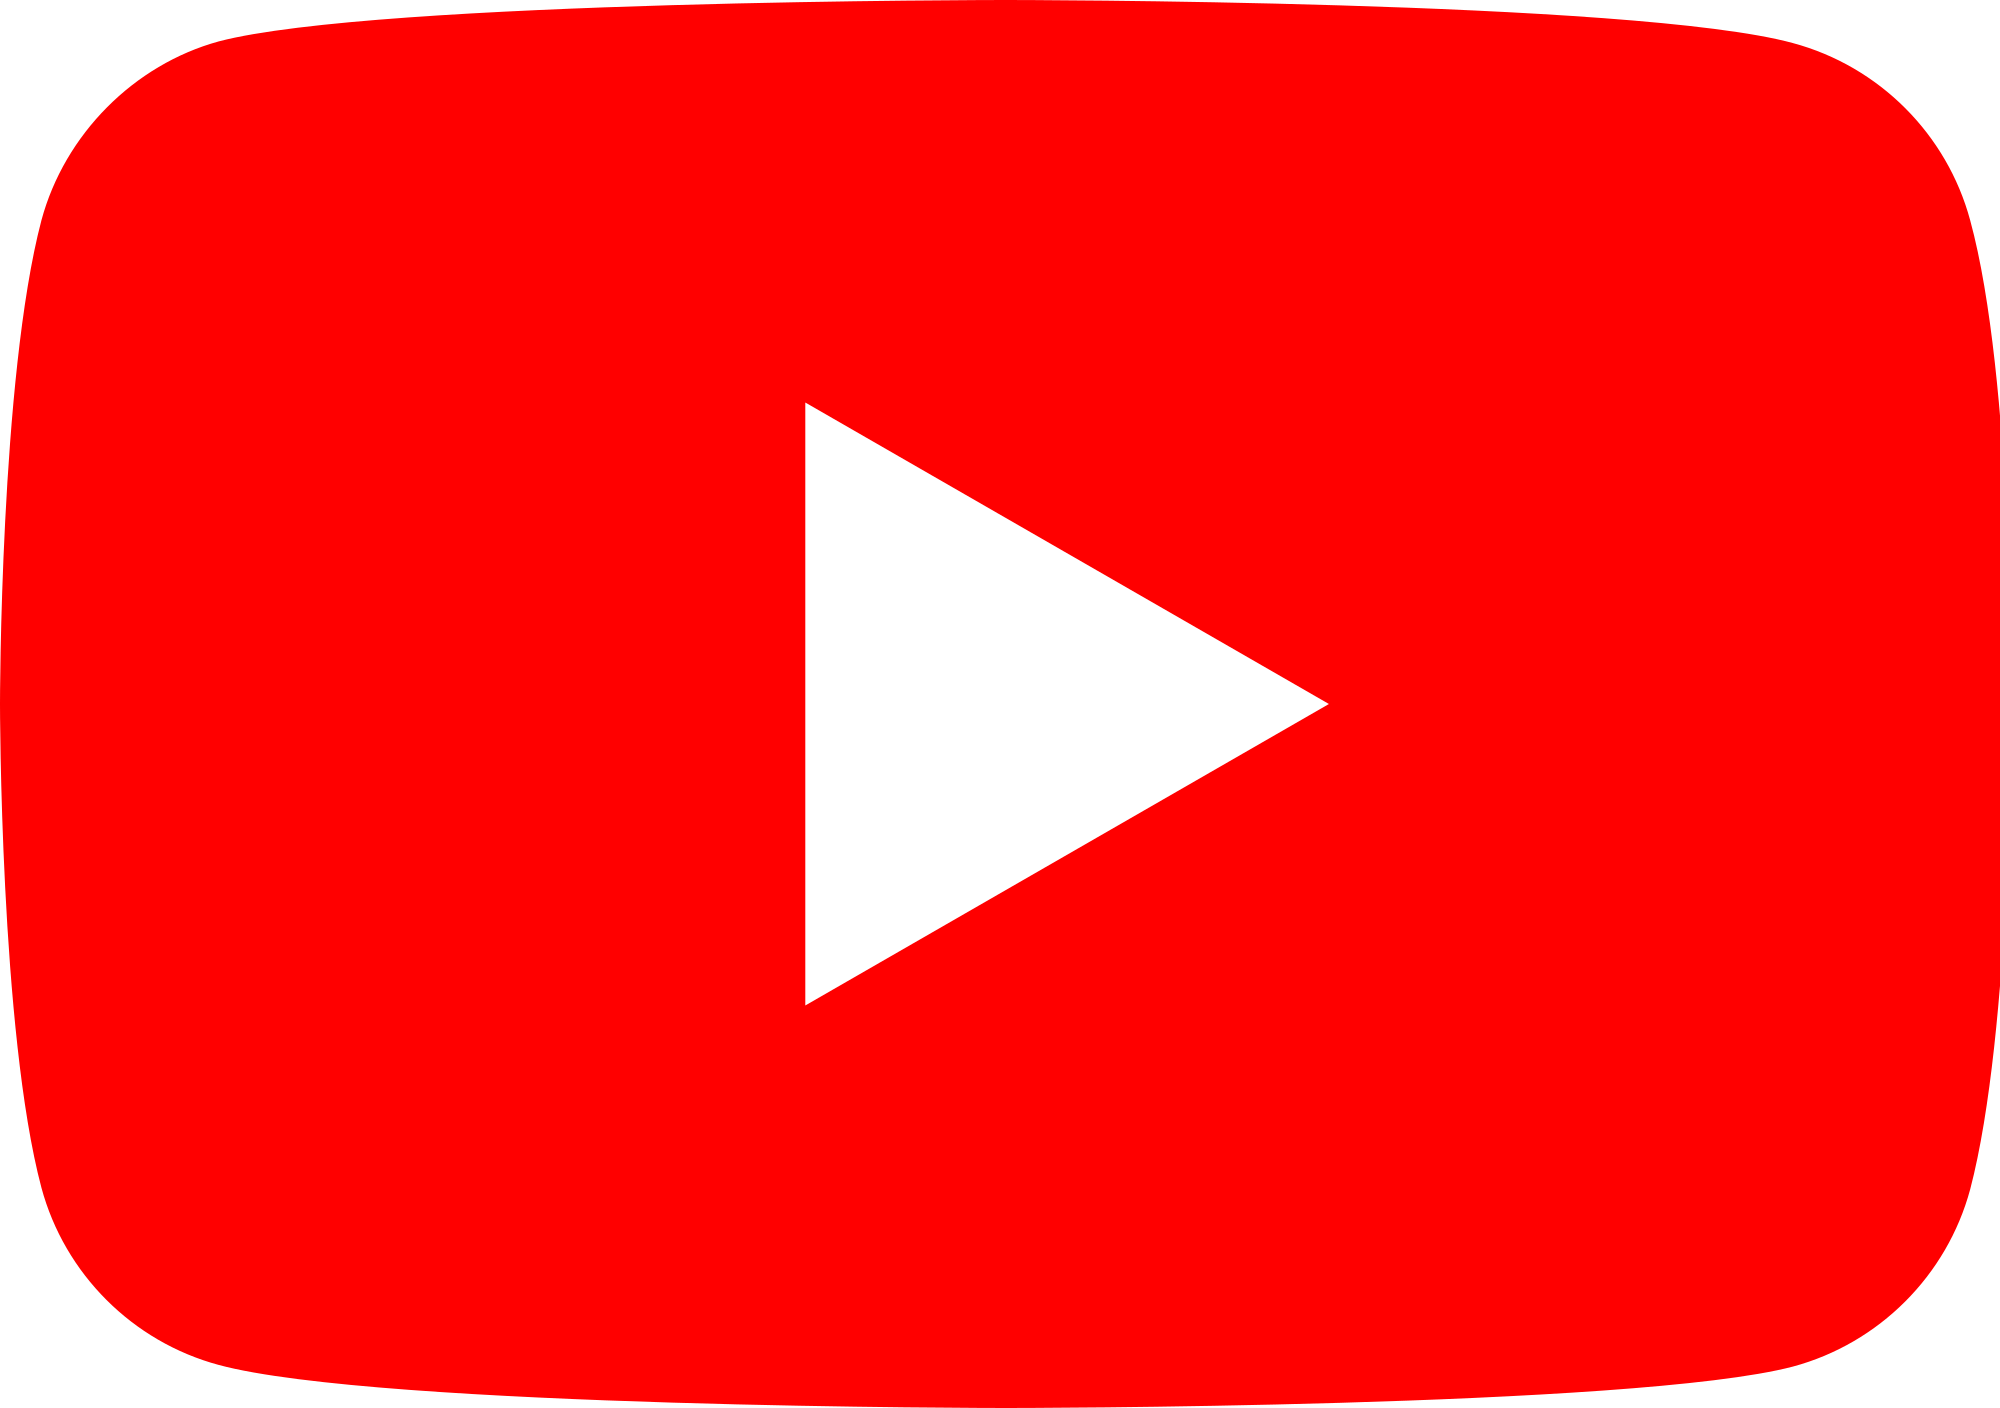 Youtube Icon Png #283208.